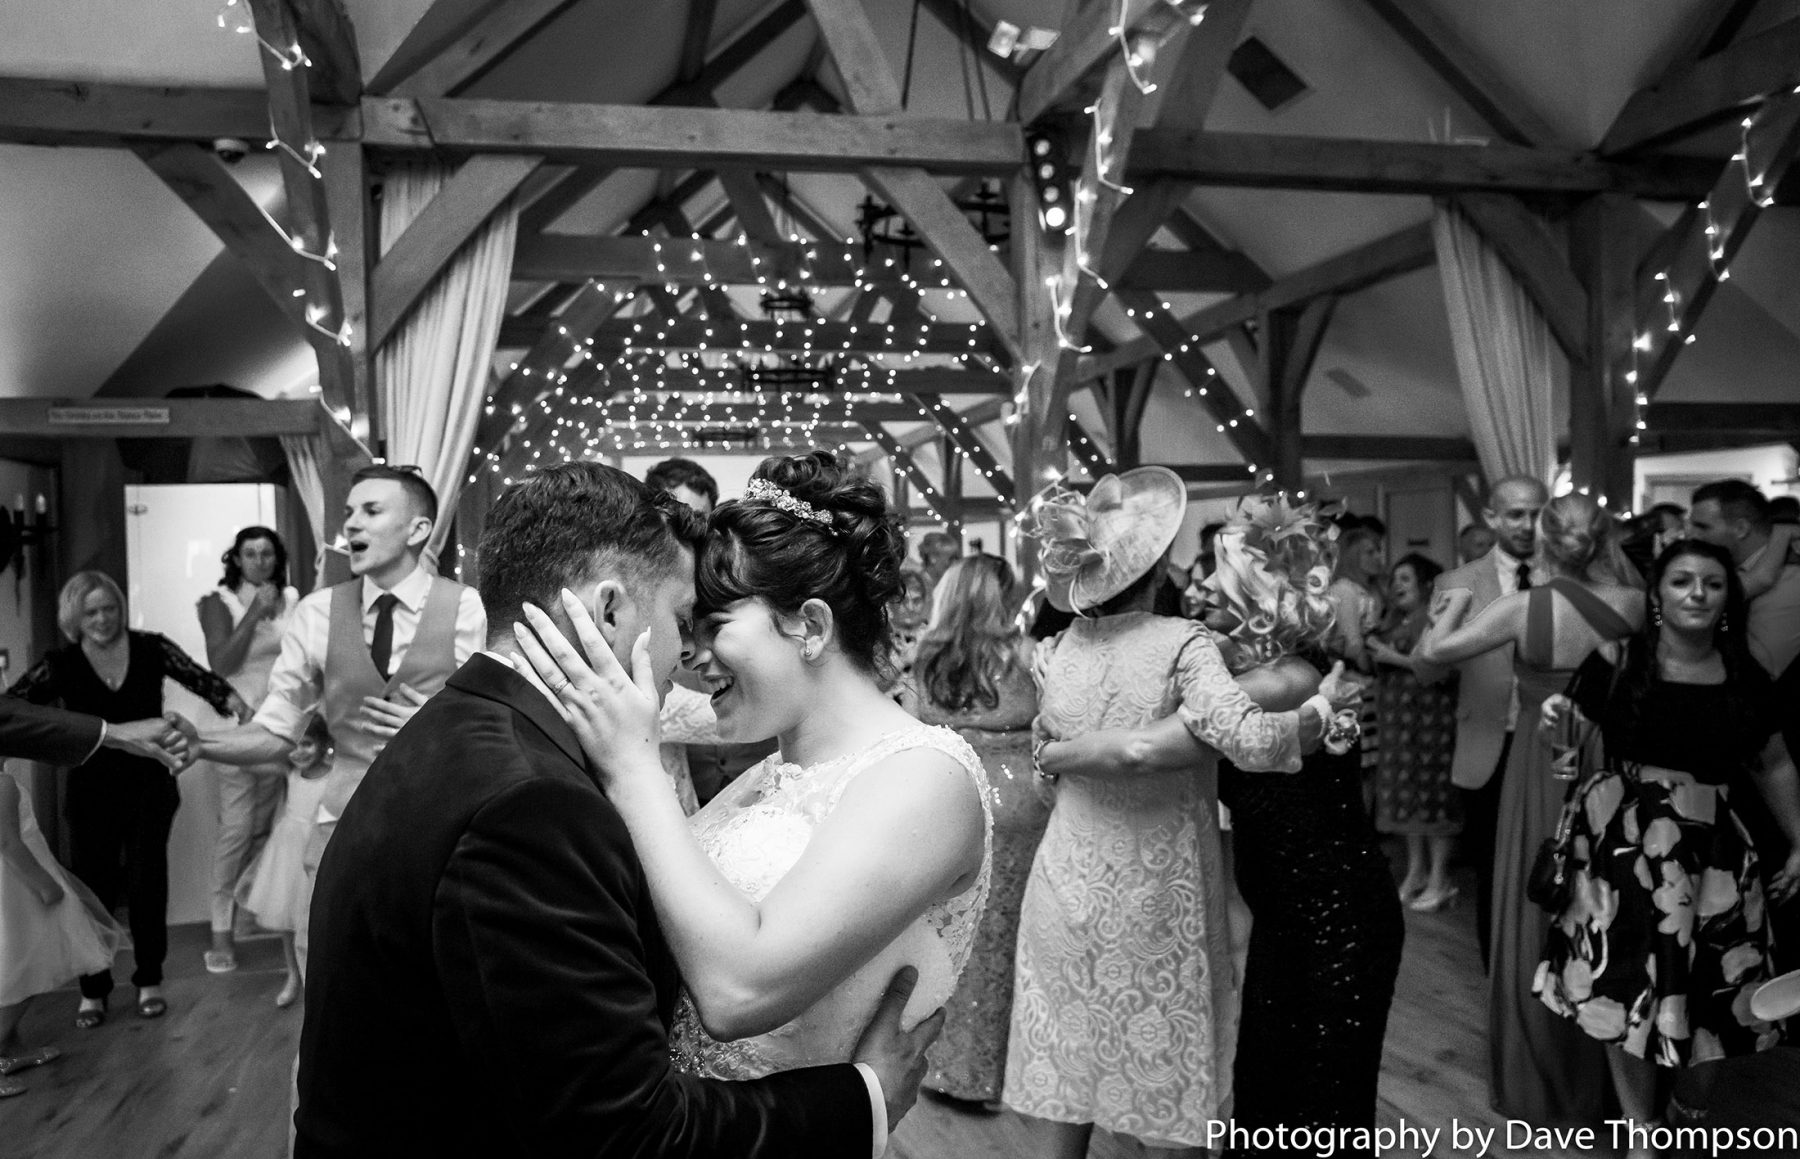 The first dance together